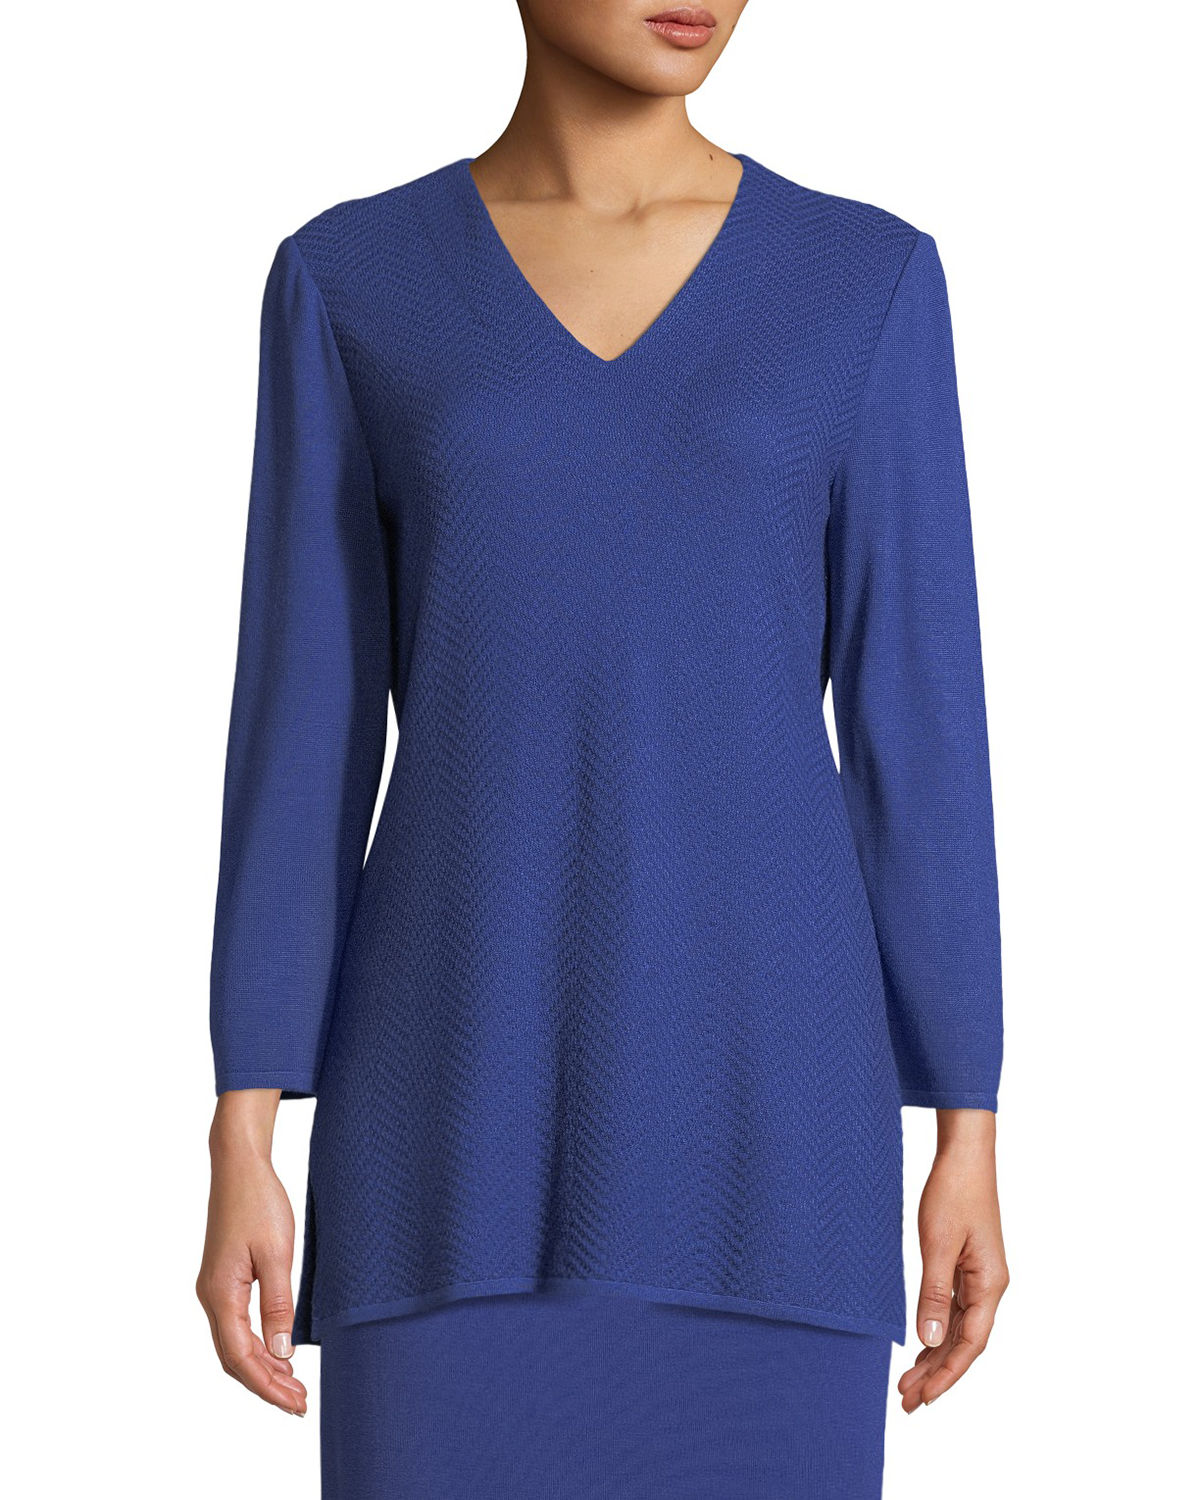 V-Neck 3/4-Sleeve Wool-Blend Sweater, Plus Size